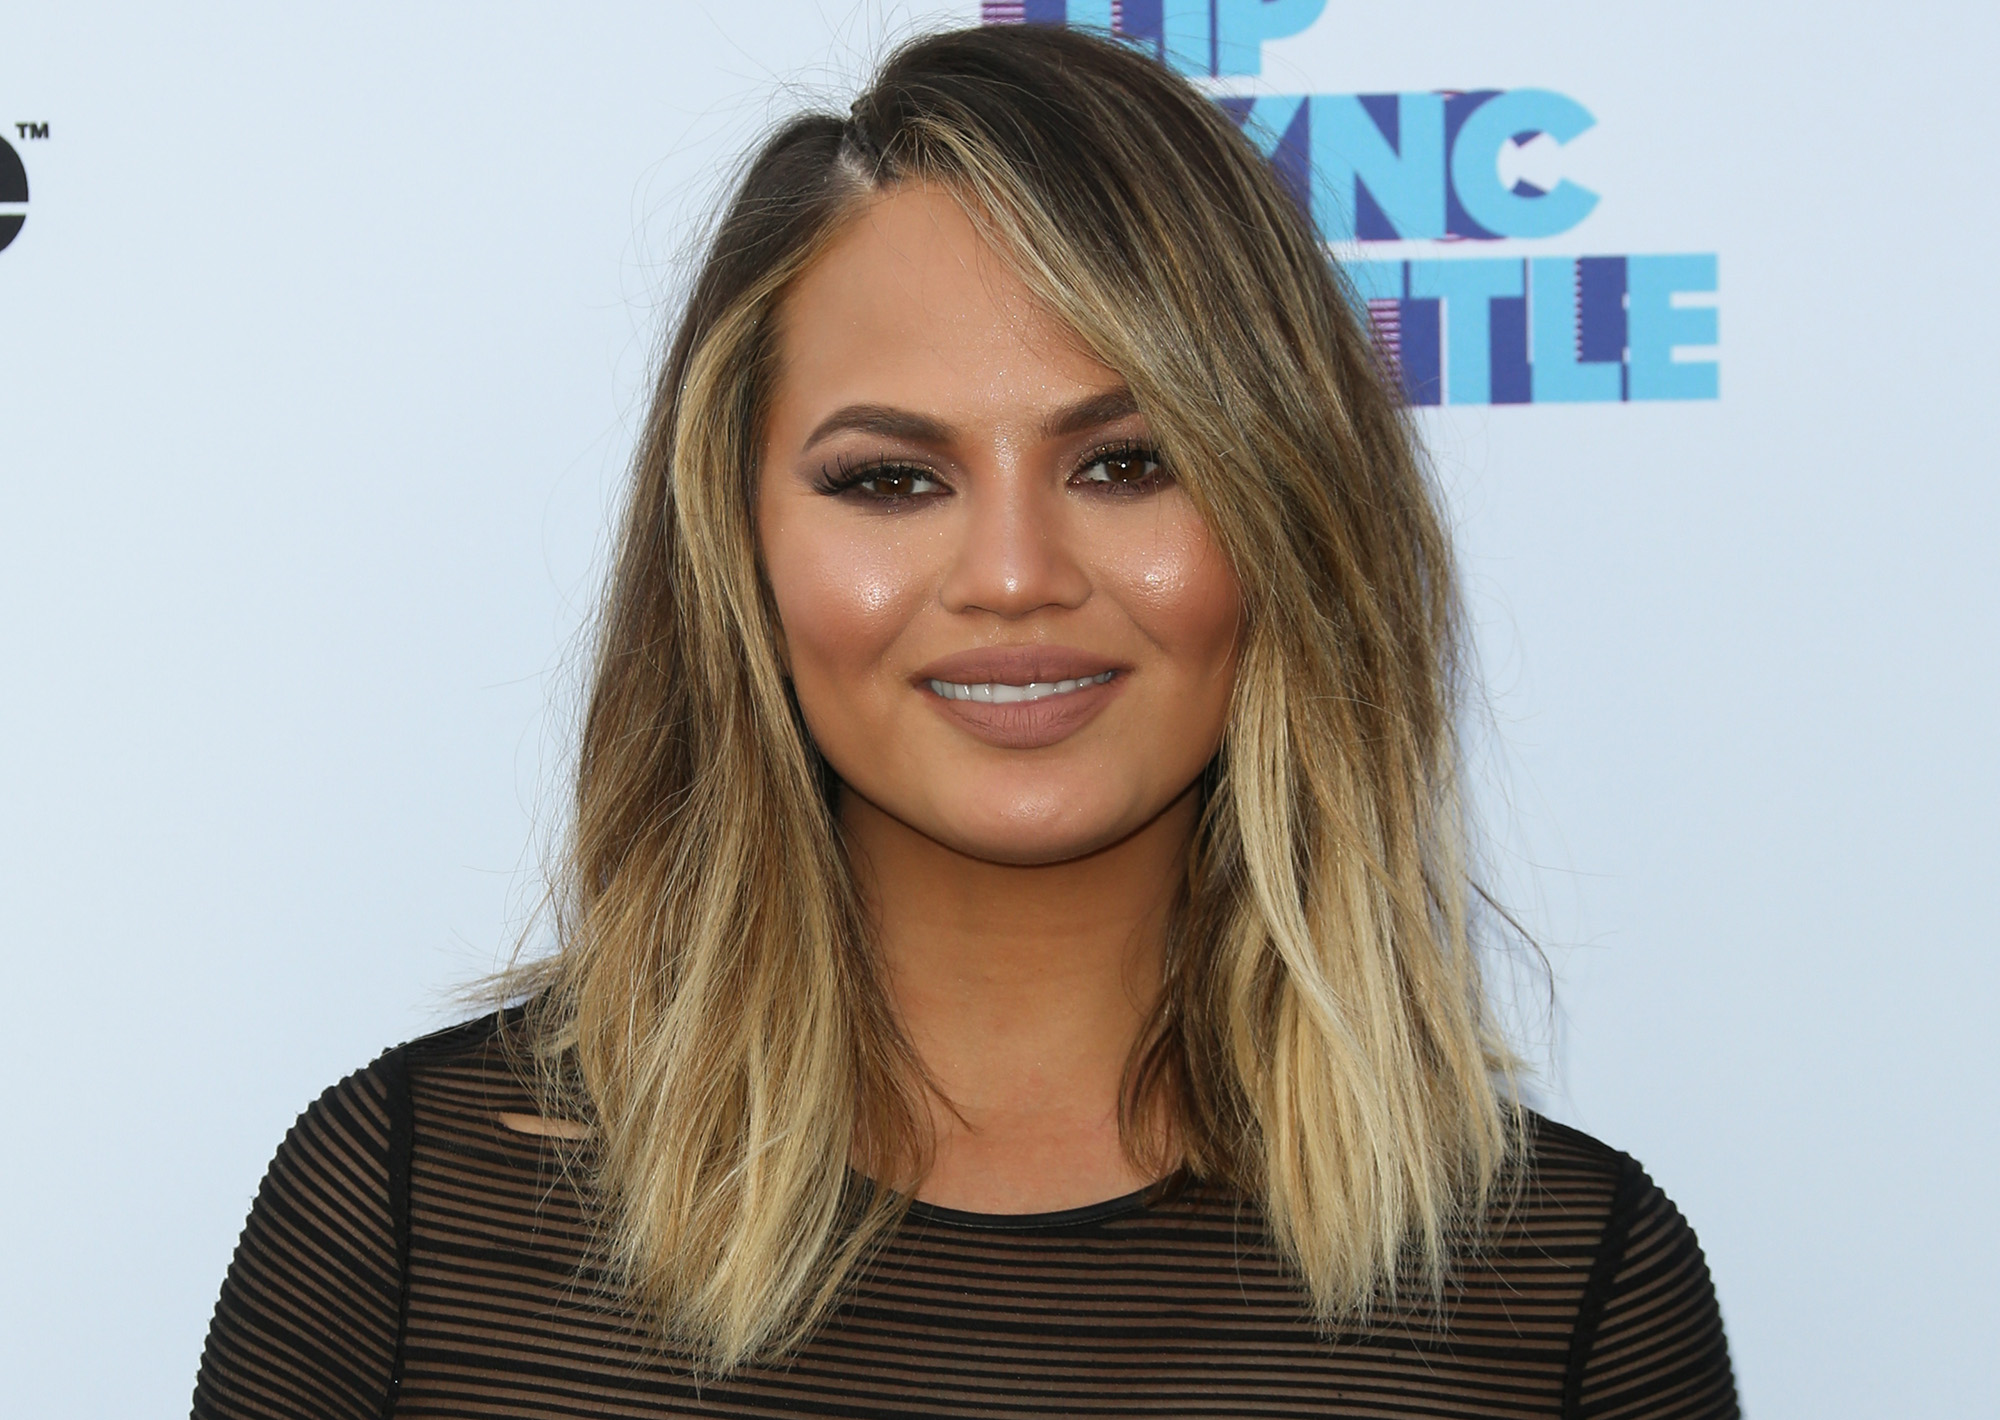 Chrissy Teigen attends the screening of Spike's  Lip Sync Battle  on June 14, 2016 in North Hollywood, California.  (Photo by Paul Archuleta/FilmMagic)